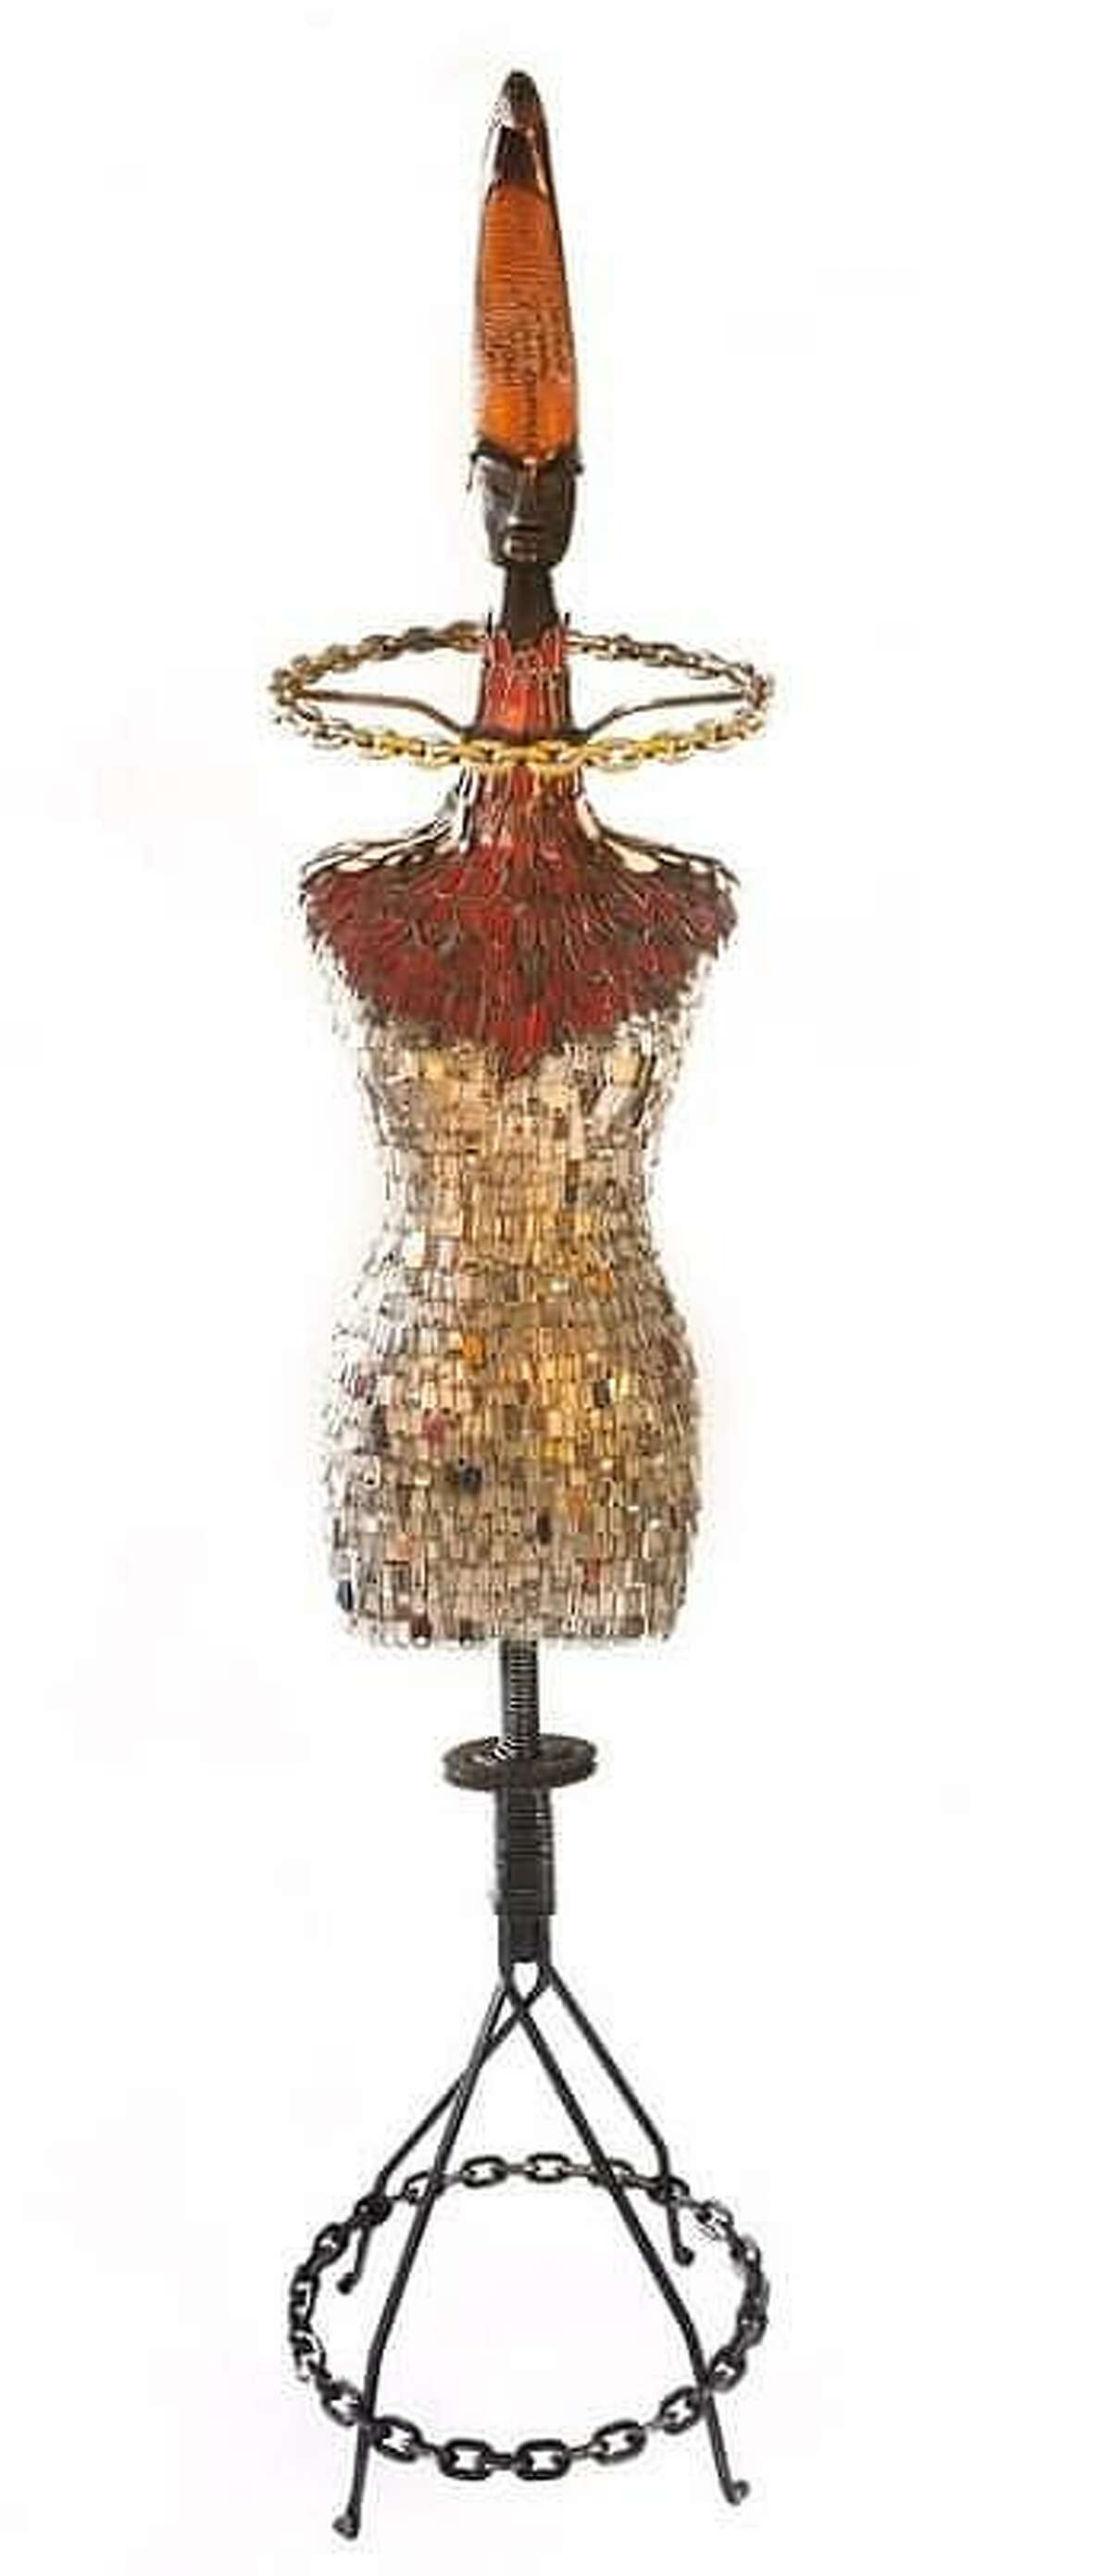 Cypress sculptor Joe Haden, a 30-year veteran of the Art Car parade in Houston and a lifetime artist, will be sharing his works of art in a solo show beginning June 5 - July 7 at the Archway Gallery, 2305 Dunlavy in Houston, just north of Westheimer. This is his piece called